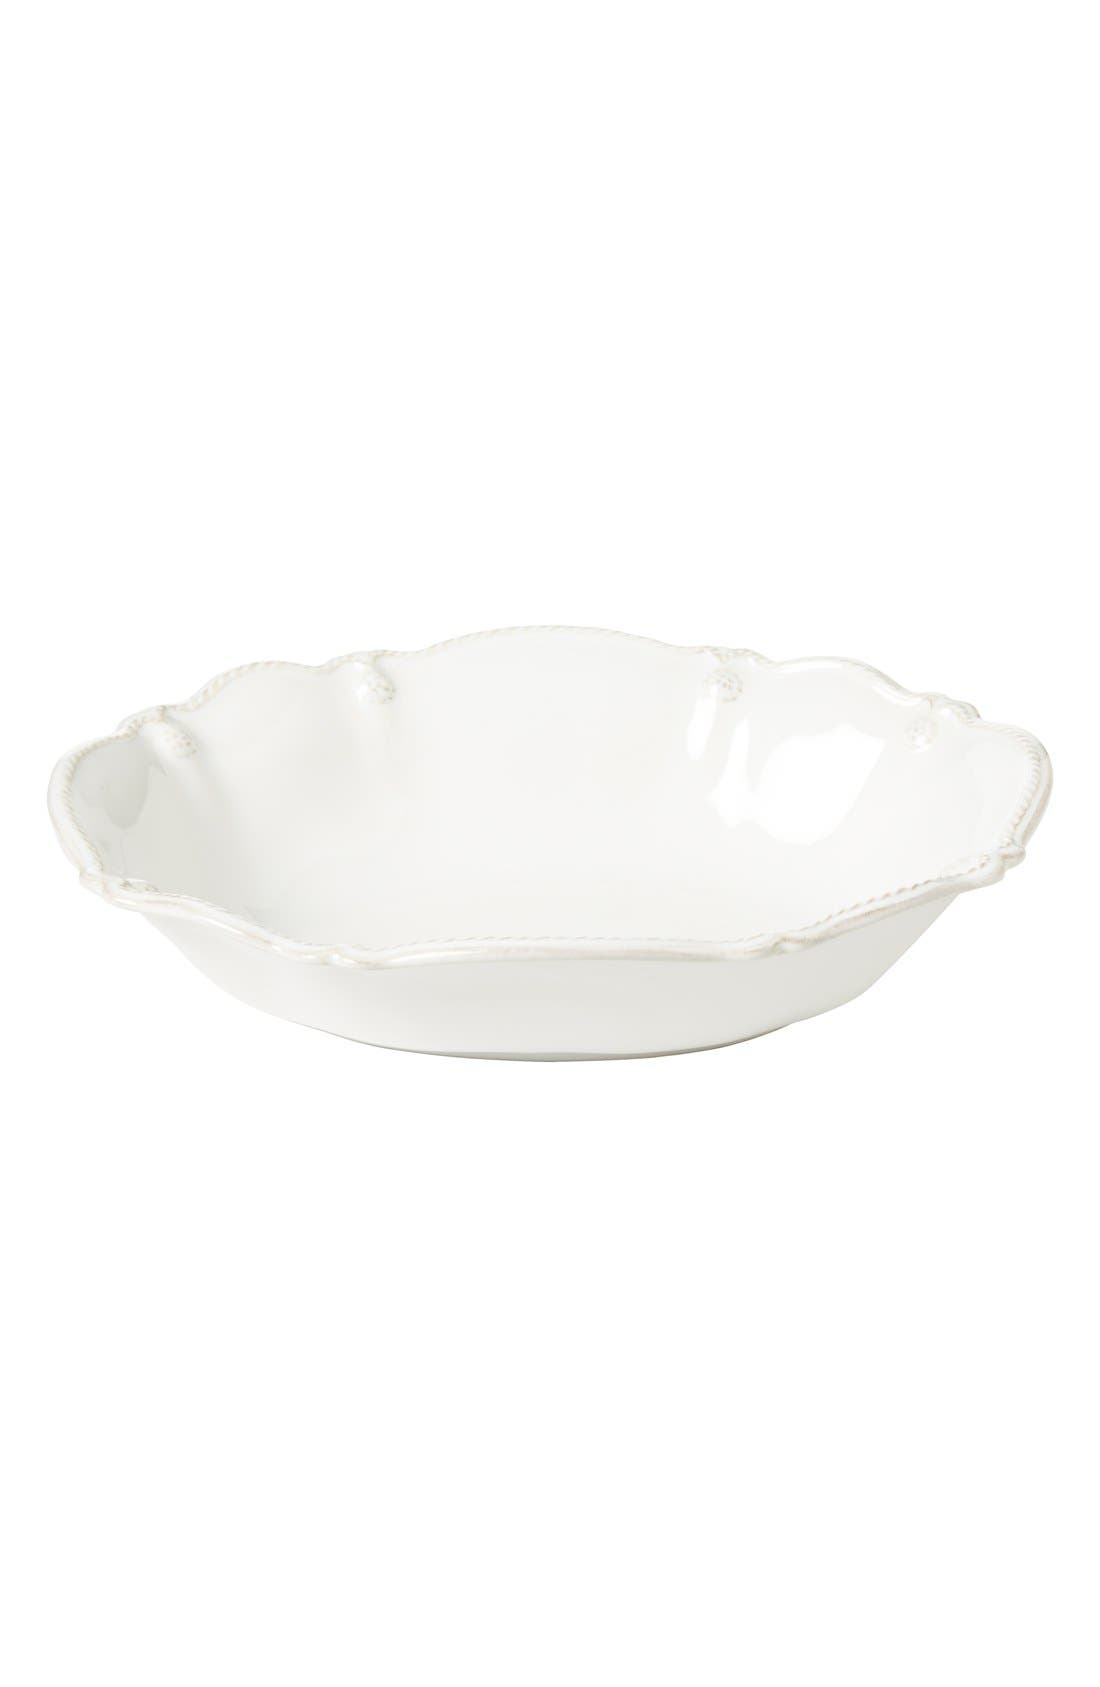 'Berry and Thread' Oval Serving Bowl,                             Alternate thumbnail 2, color,                             Whitewash